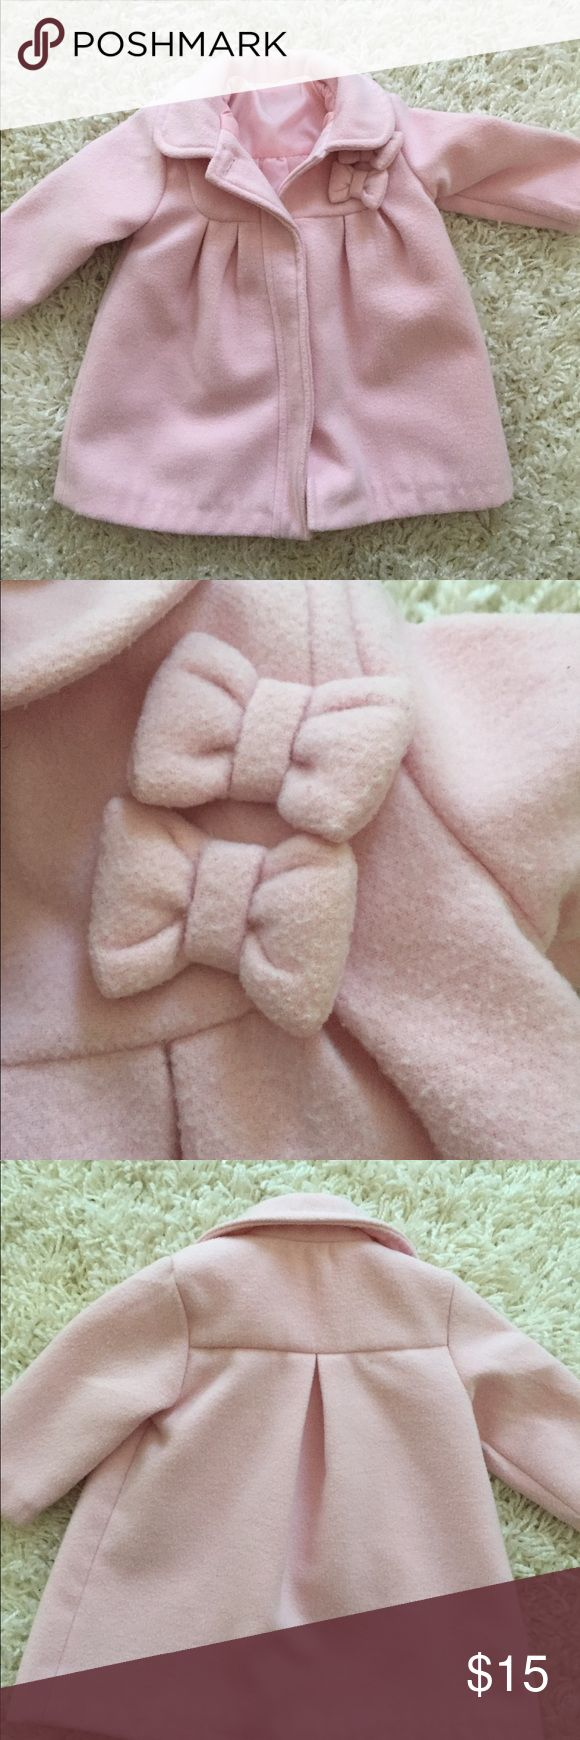 Pink Baby Girl Peacoat Adorable Peacoat for baby Girl. Size is 0 - 3 months but it fit my peanut up to 6 months. Has snap buttons and two bows up by the neck. In excellent condition. Jackets & Coats Pea Coats